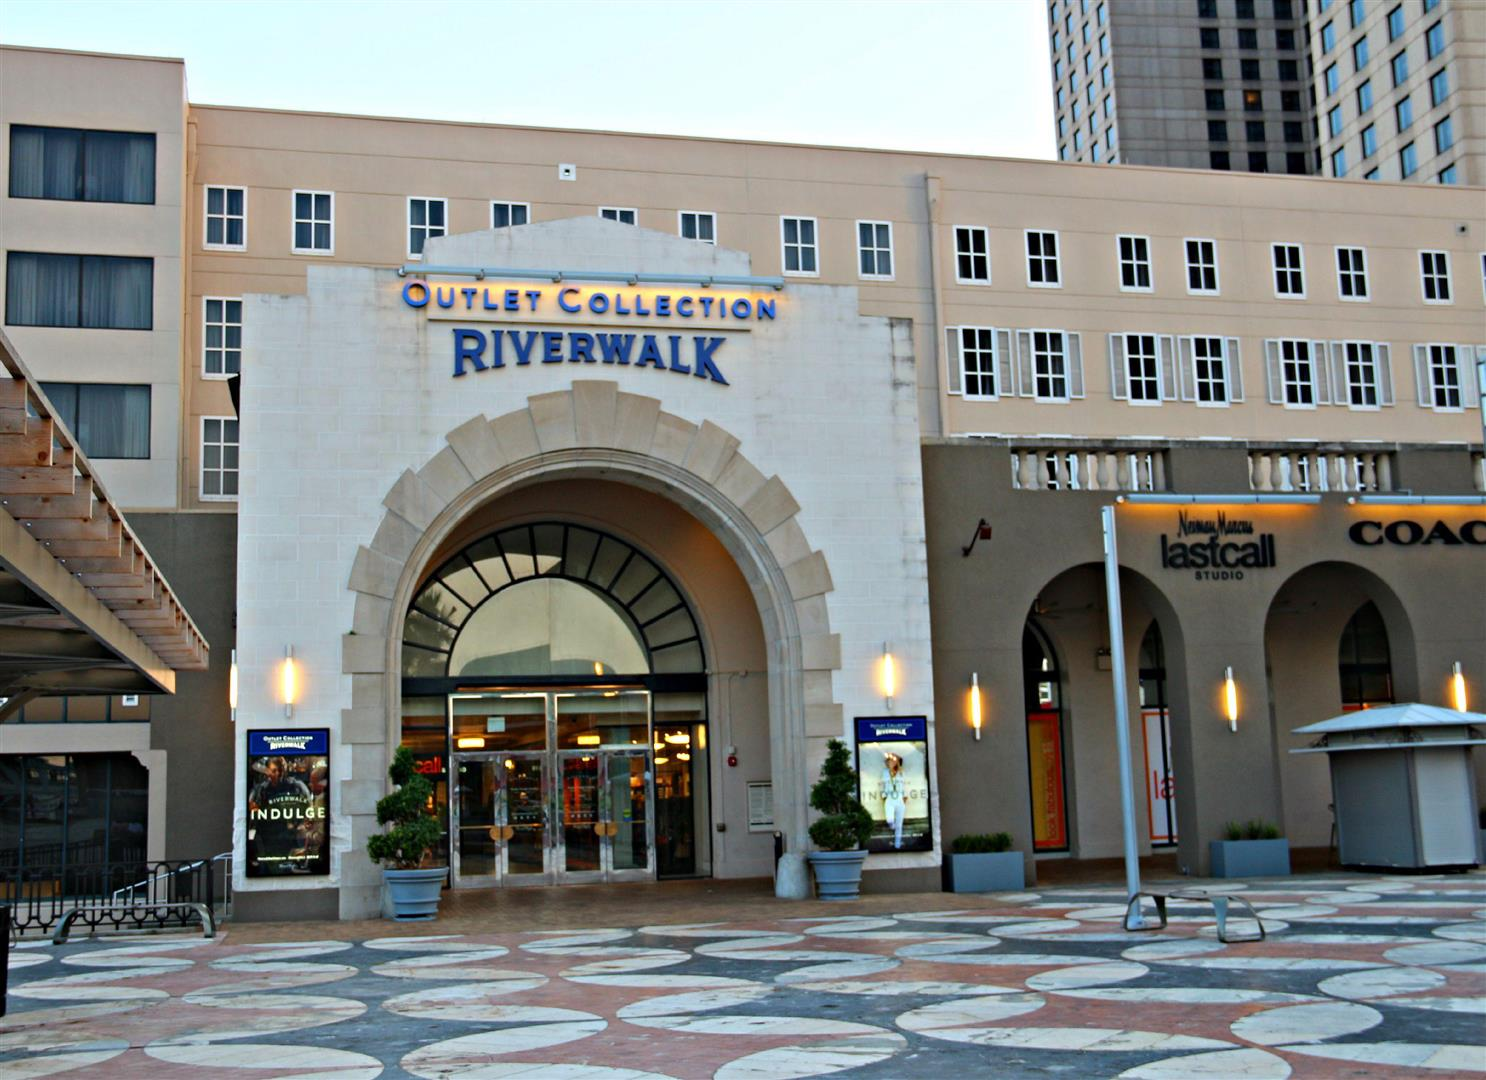 OutletCollectionRiverwalk,WarehouseDistrict.jpg